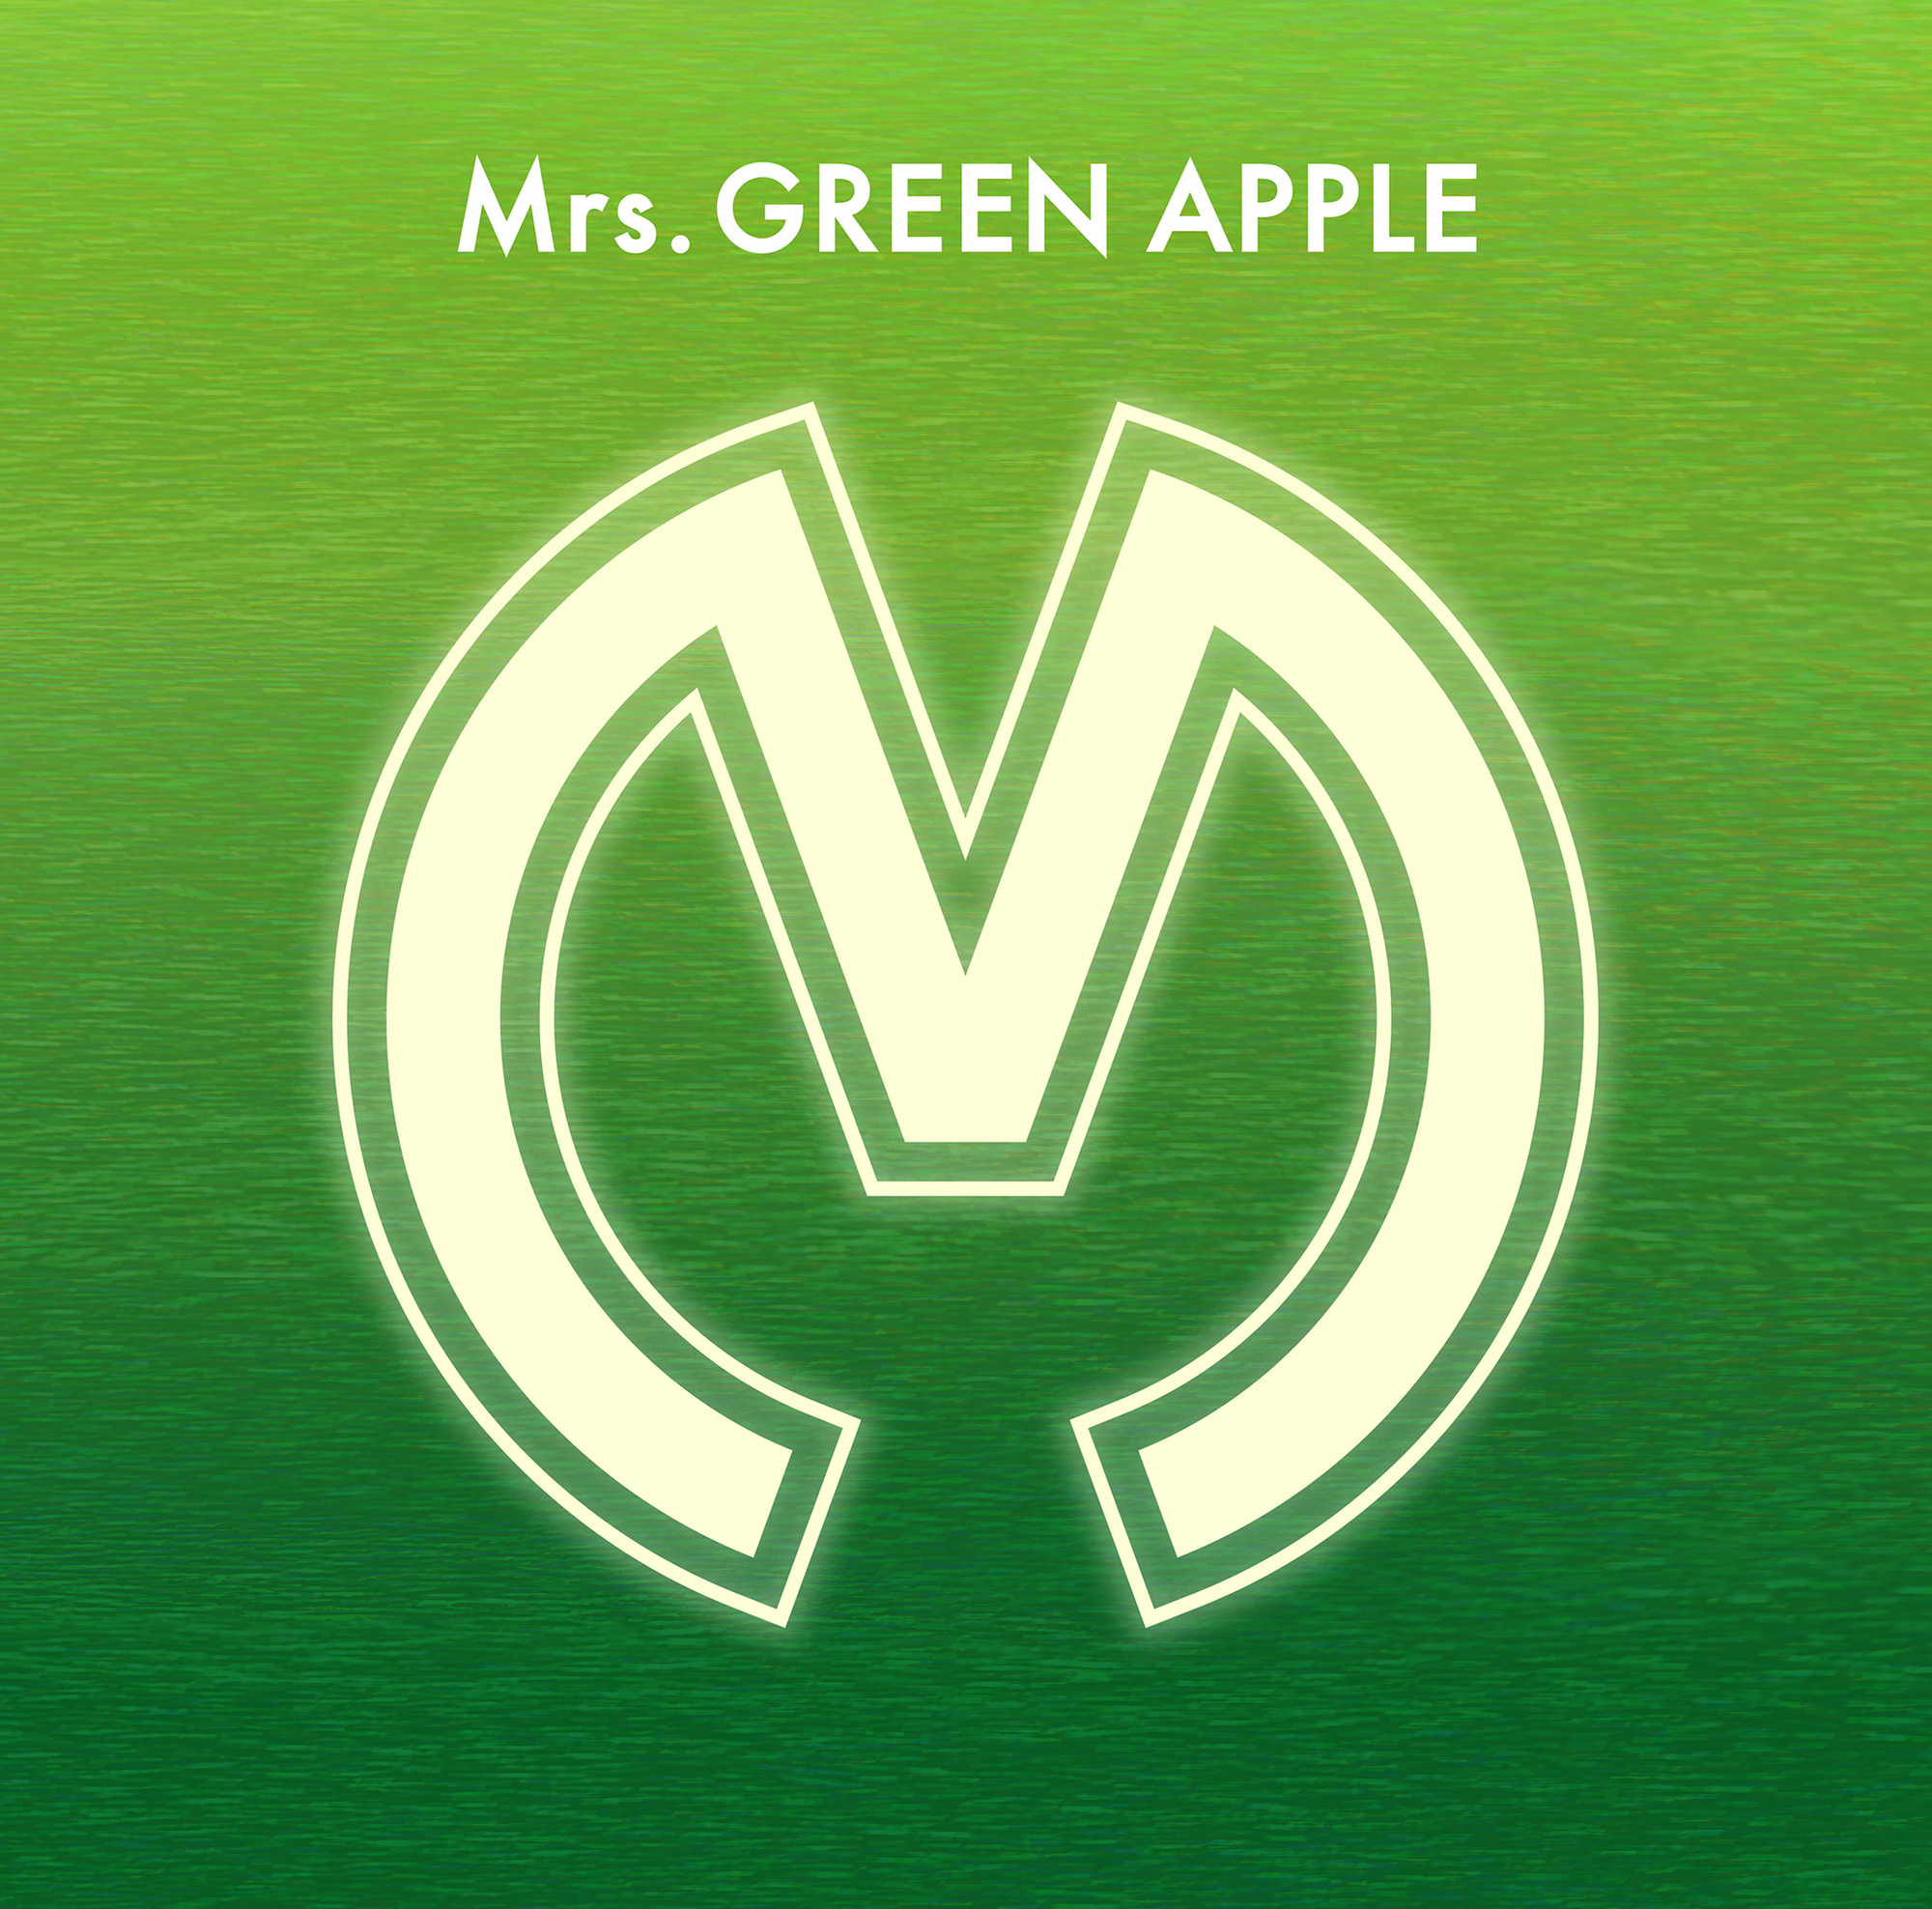 Mrs. GREEN APPLEの画像 p1_36